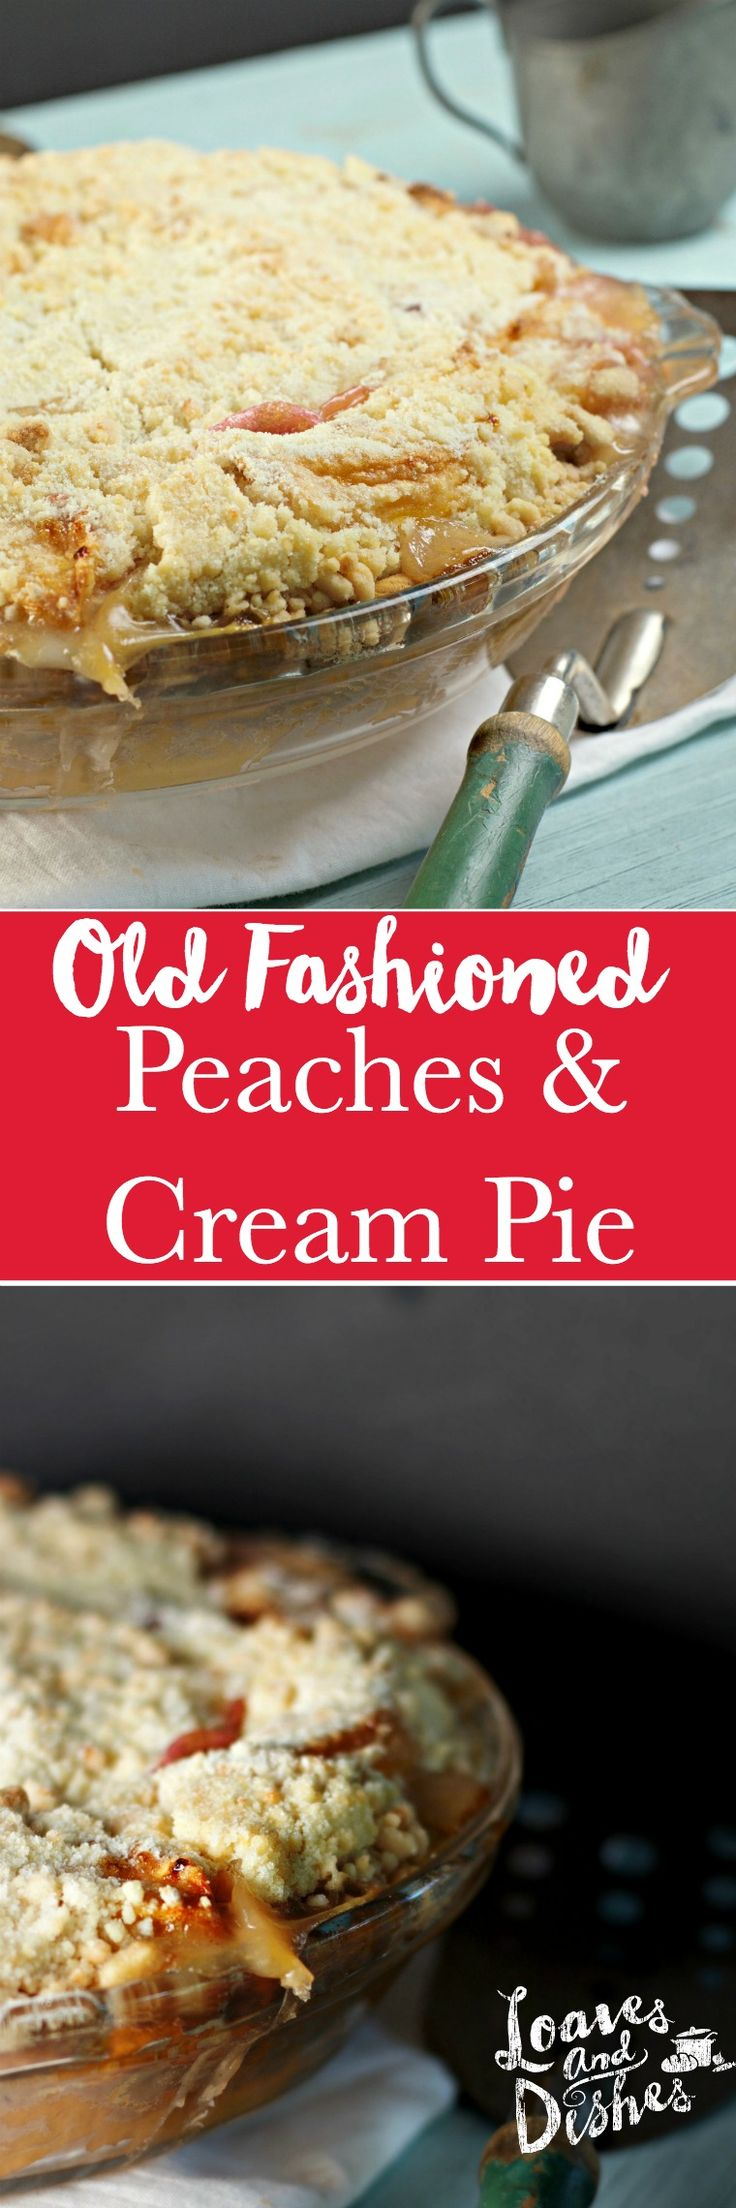 Old Fashioned Peaches and Cream Pie uses fresh peaches (only 5 or 6) and simple ingredients you probably have around the house.  EASY AS PIE!  Delicious like your grandmother made!  The perfect recipe for a get together or just for your family!  Great Taste!